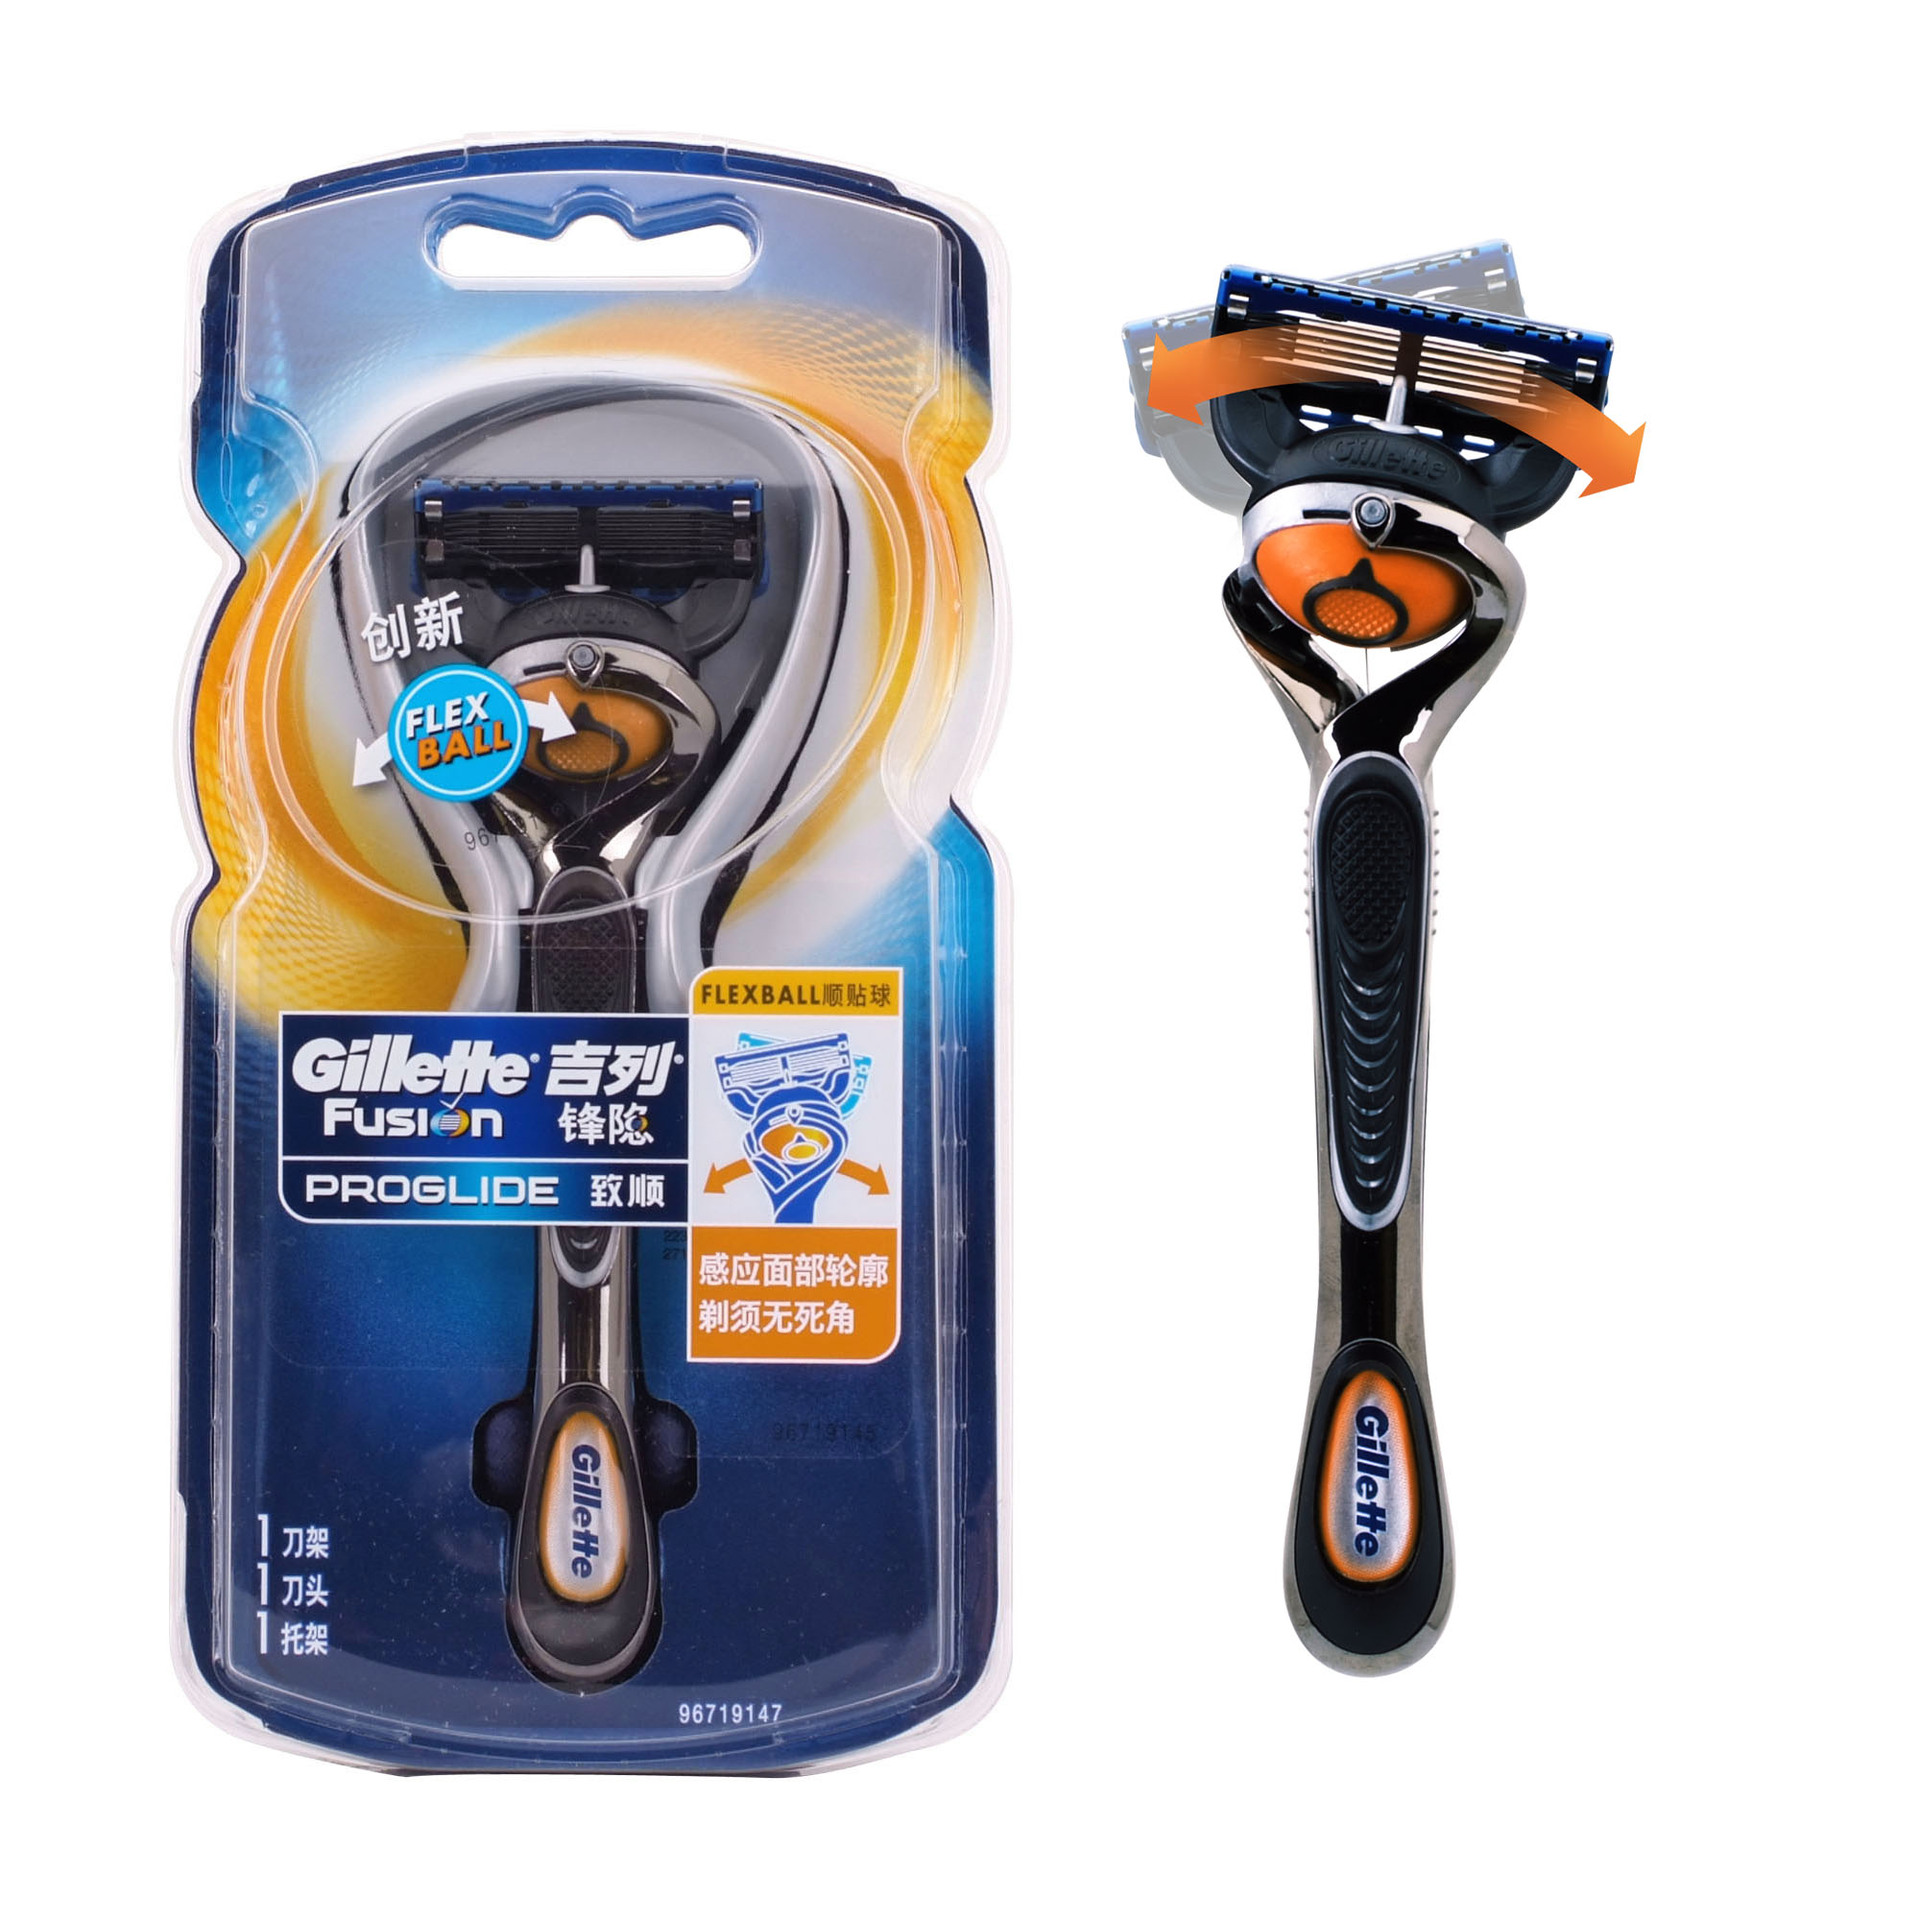 Genuine Gillette Fusion PROGLIDE Razors Flex Ball Brand Shaving Machine Washable Shavers For Men 1holder + 1 Blade